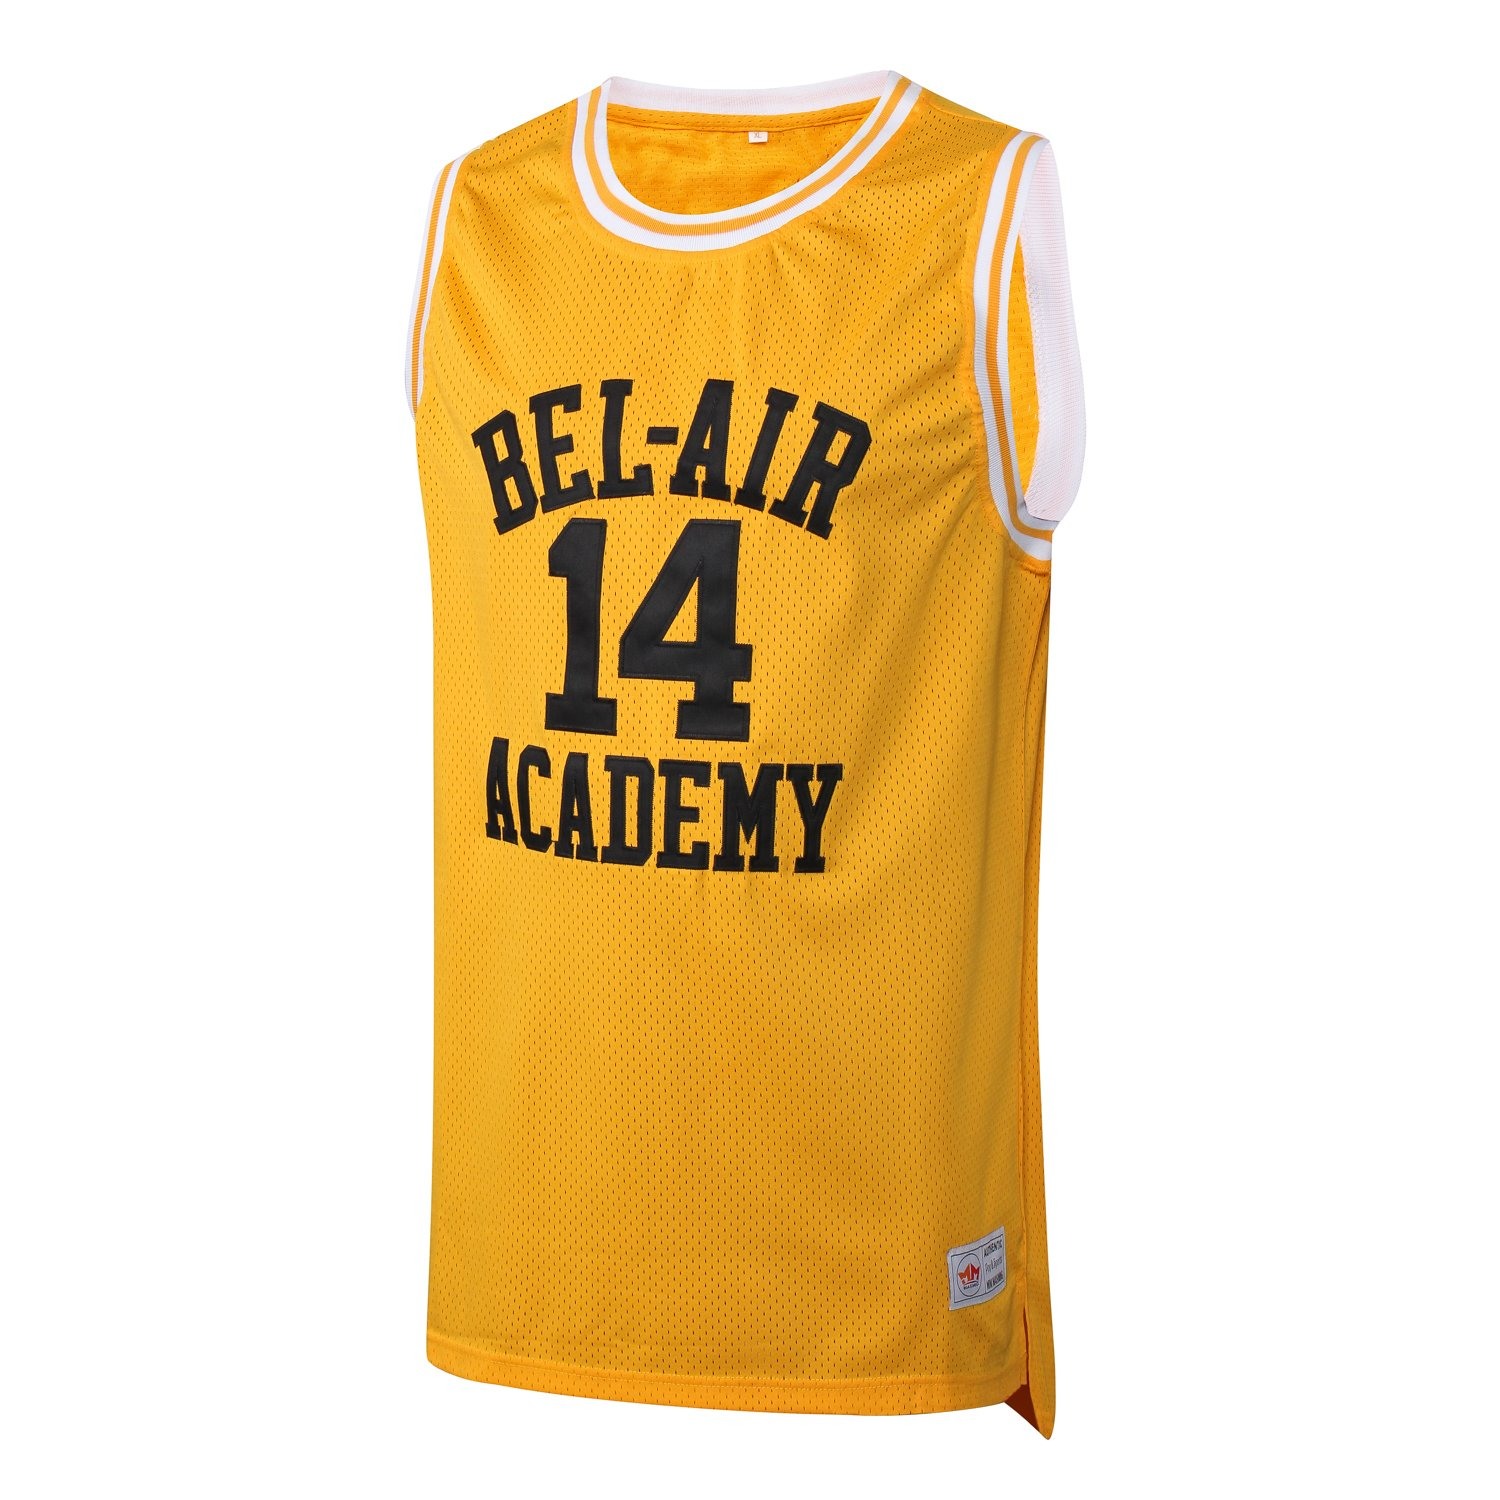 0580bf9c2c99 Amazon.com  MM MASMIG Will Smith 14 The Fresh Prince of Bel Air Academy  Basketball Jersey S-XXL Yellow  Clothing